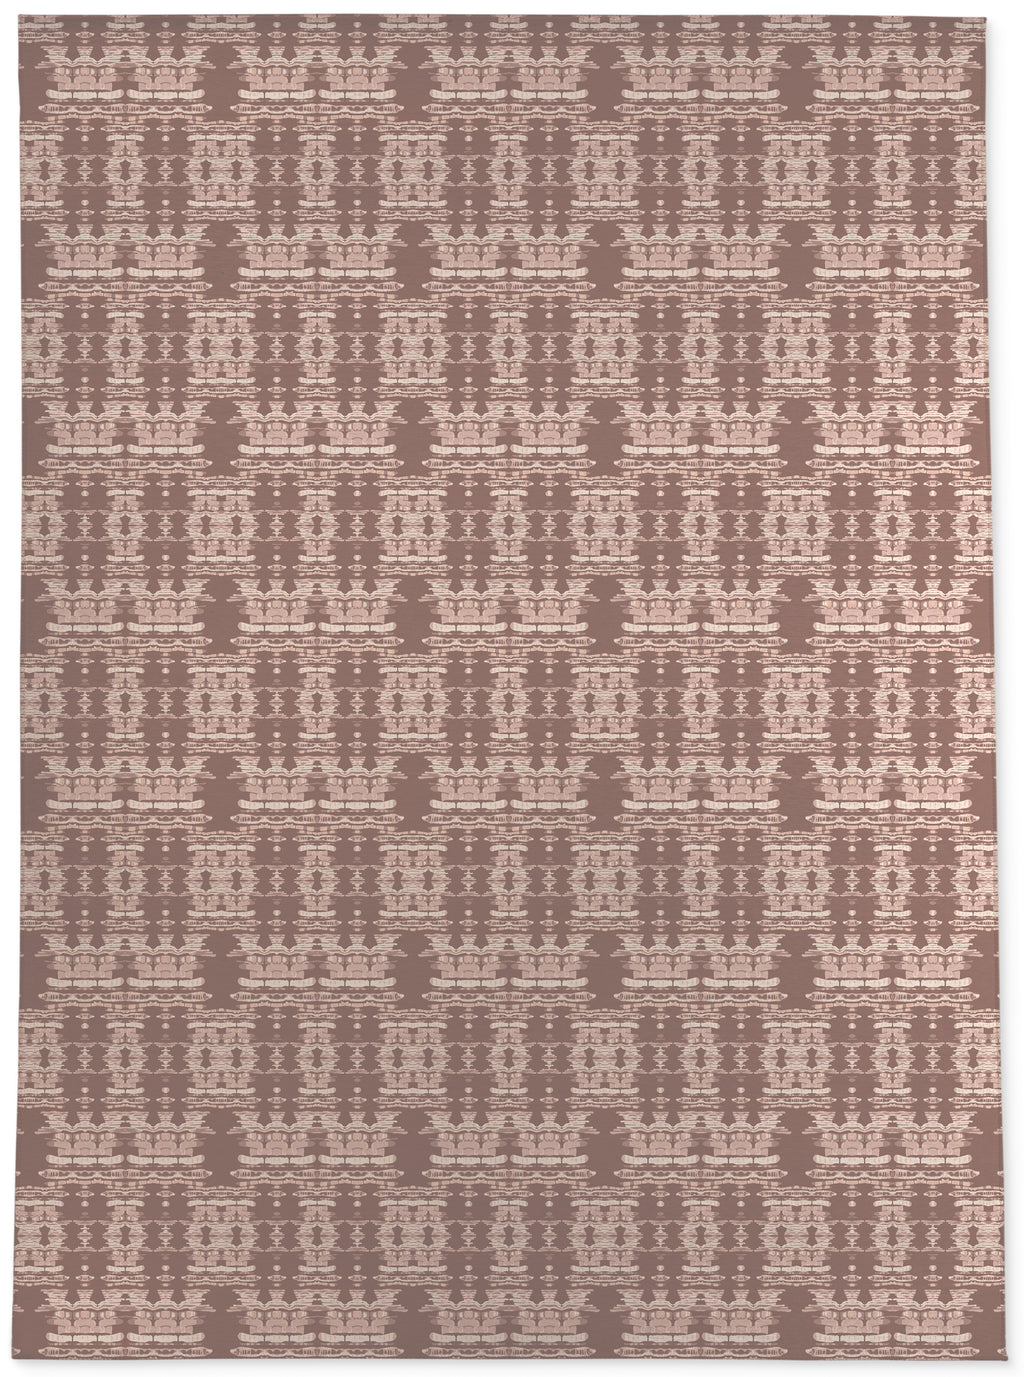 AZTEC DESERT CLAY Area Rug By Hope Bainbridge